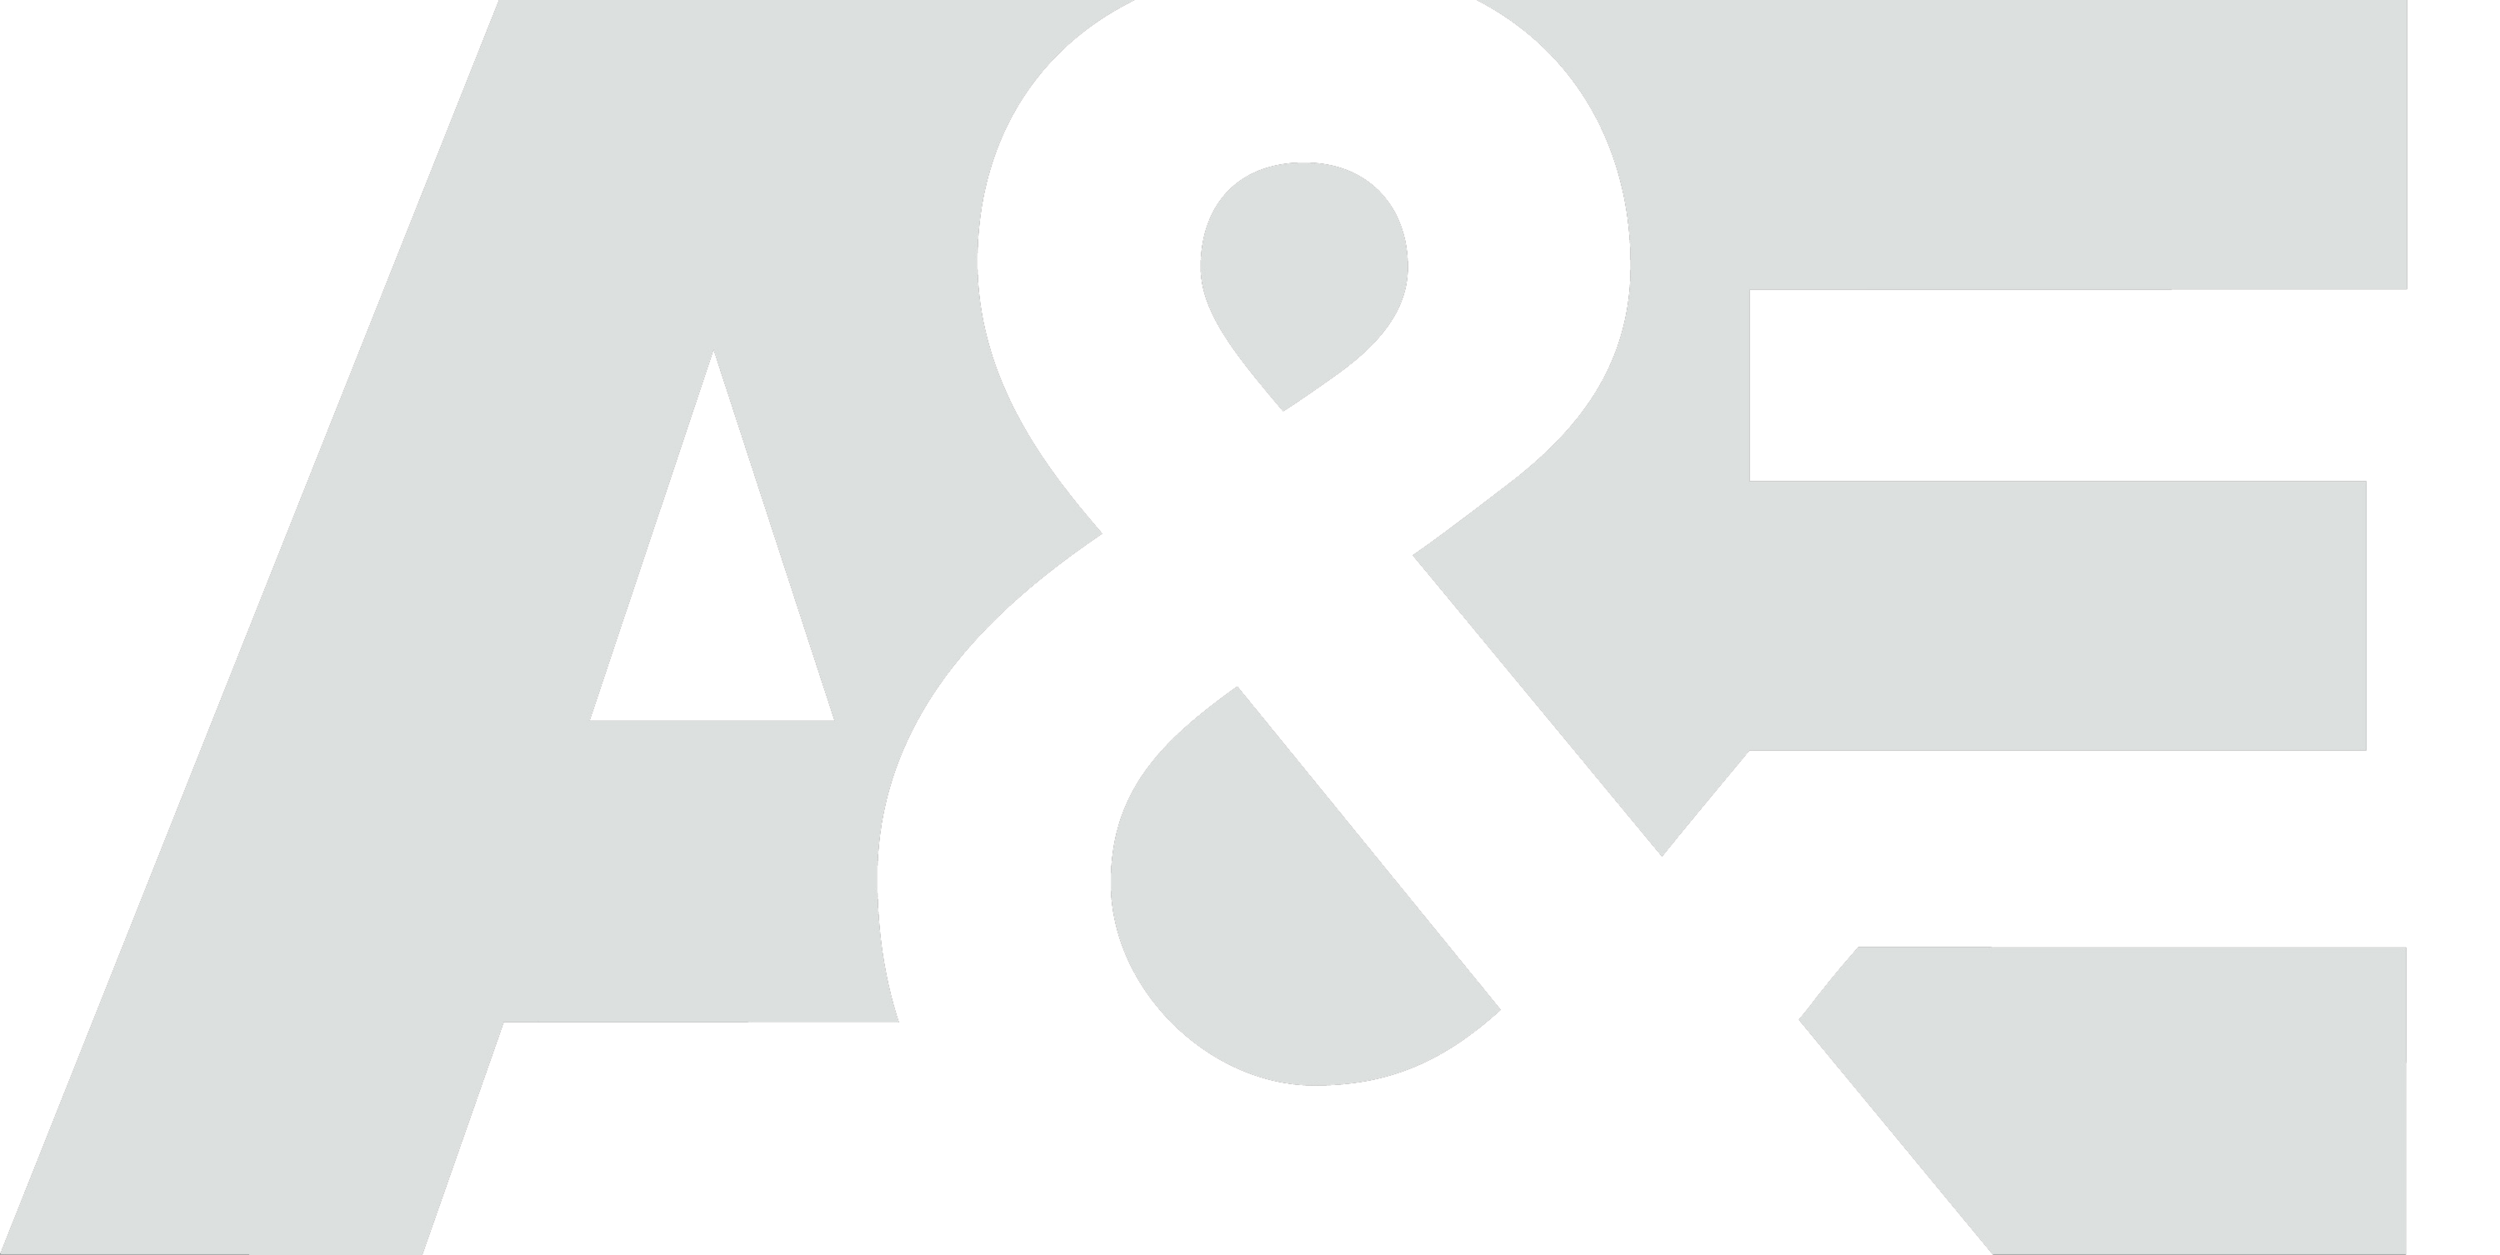 a-and-e-logo.png